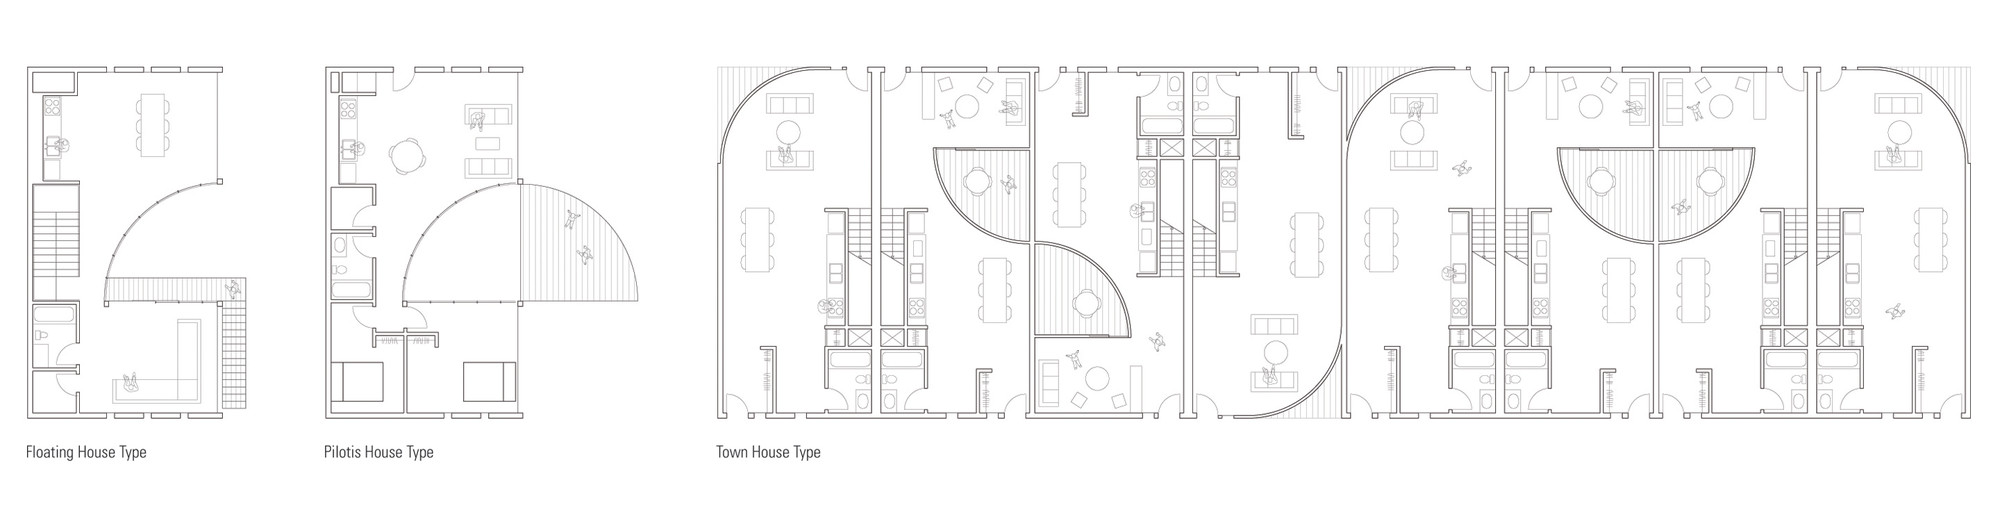 floor plans / Courtesy of The Open Workshop